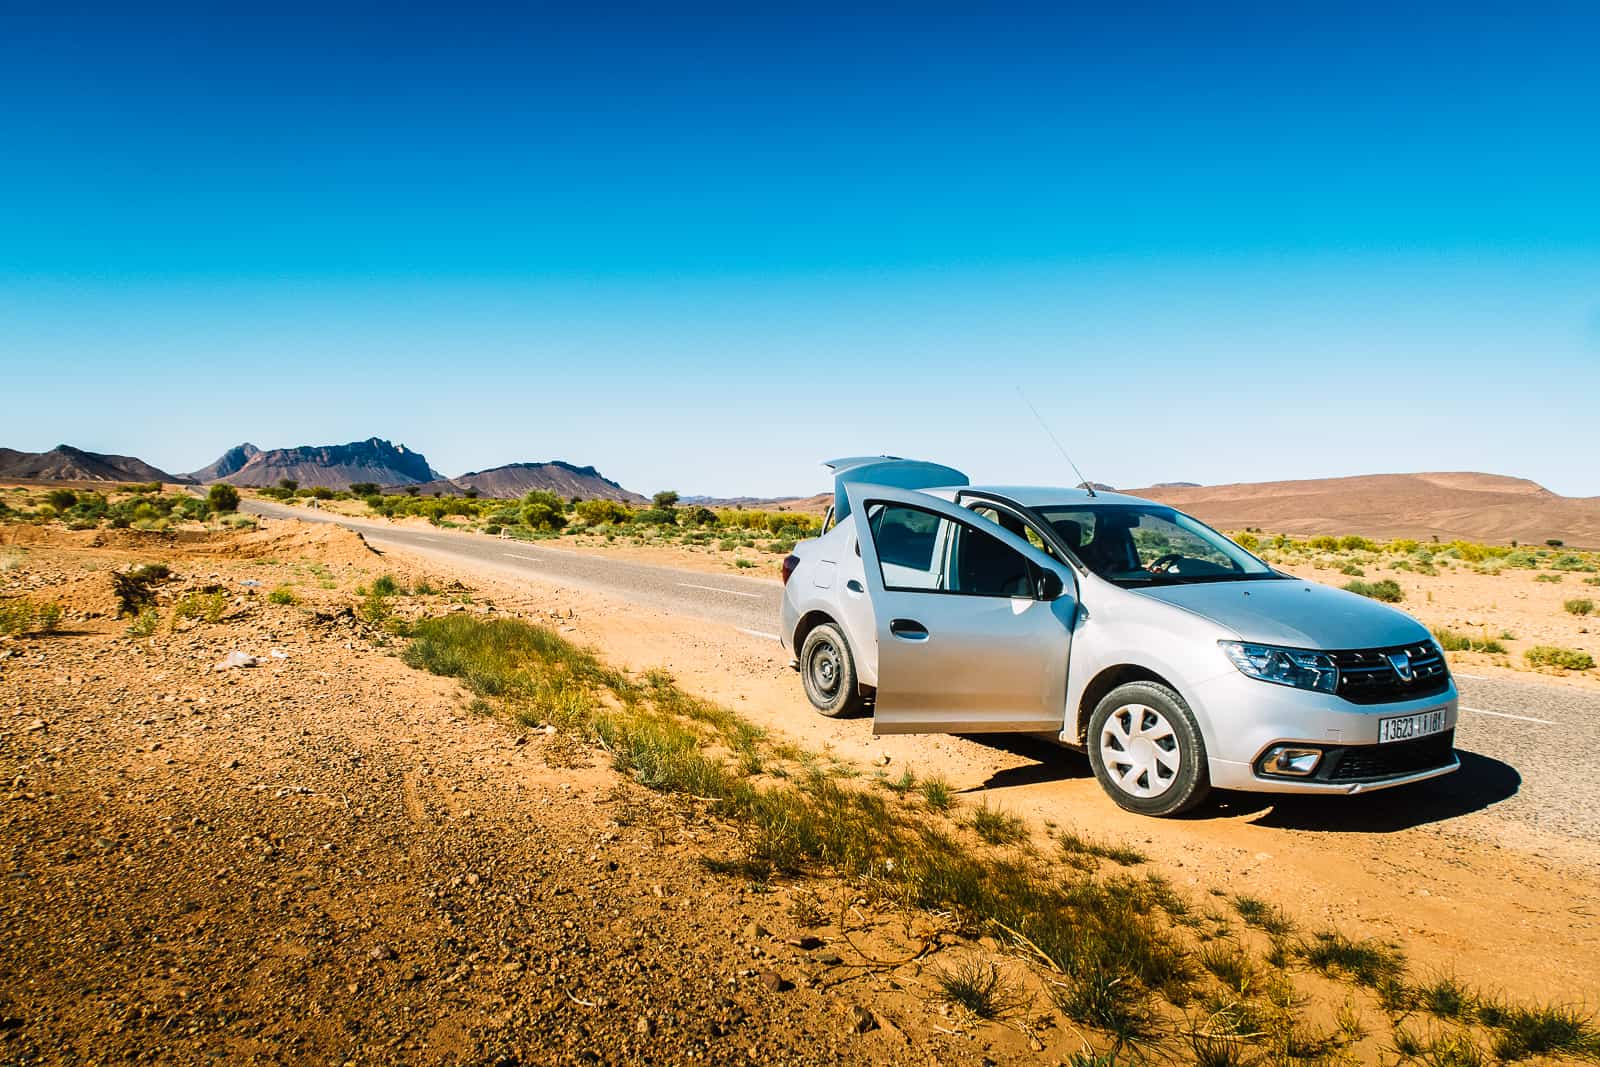 tips to rent a car in Morocco